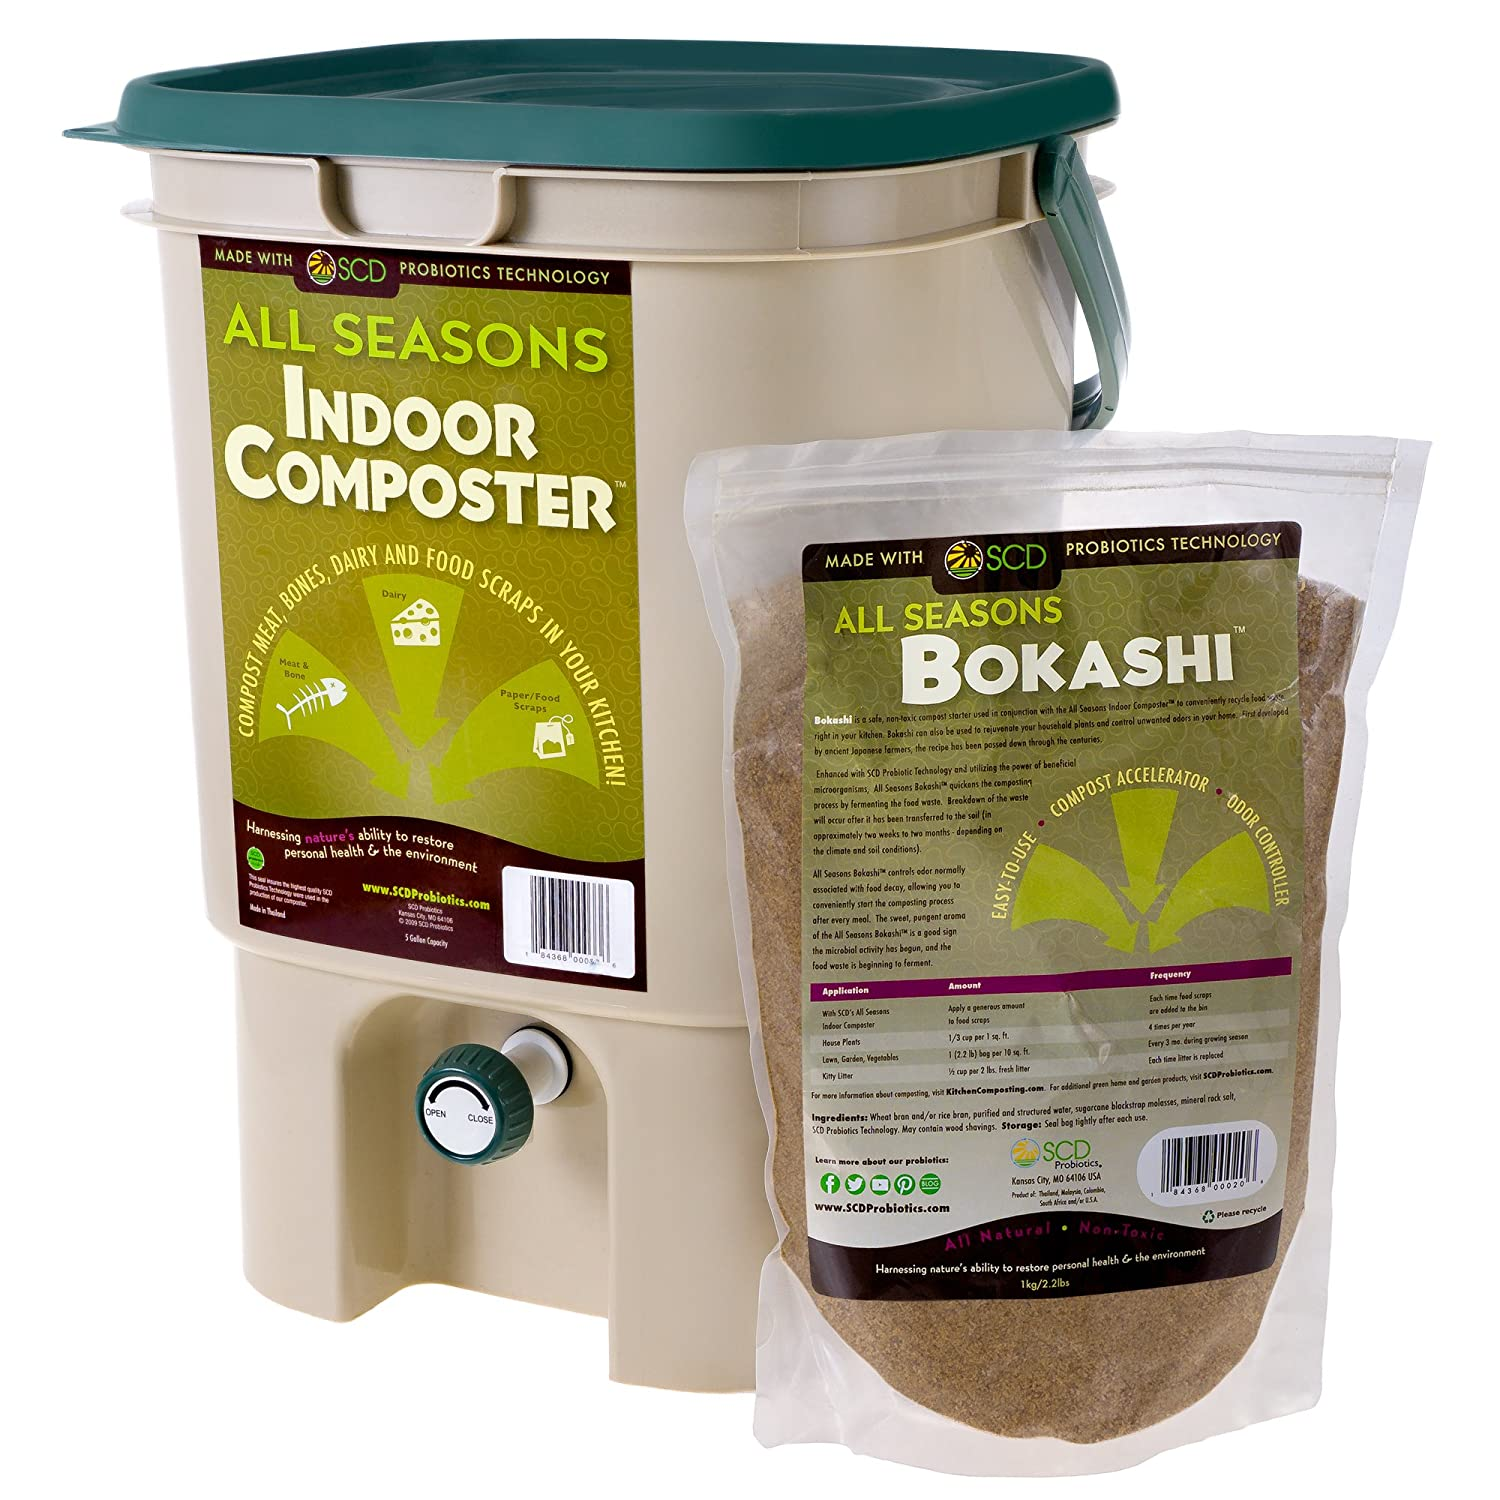 B003ANMBKQ SCD Probiotics All Seasons Indoor Composter, Easy Start Countertop Kitchen Compost Bin with Bokashi - Easily Compost Indoors, Low Odor, Beginner Friendly - K100 Tan, 5 gal 81is2BRFW2VL